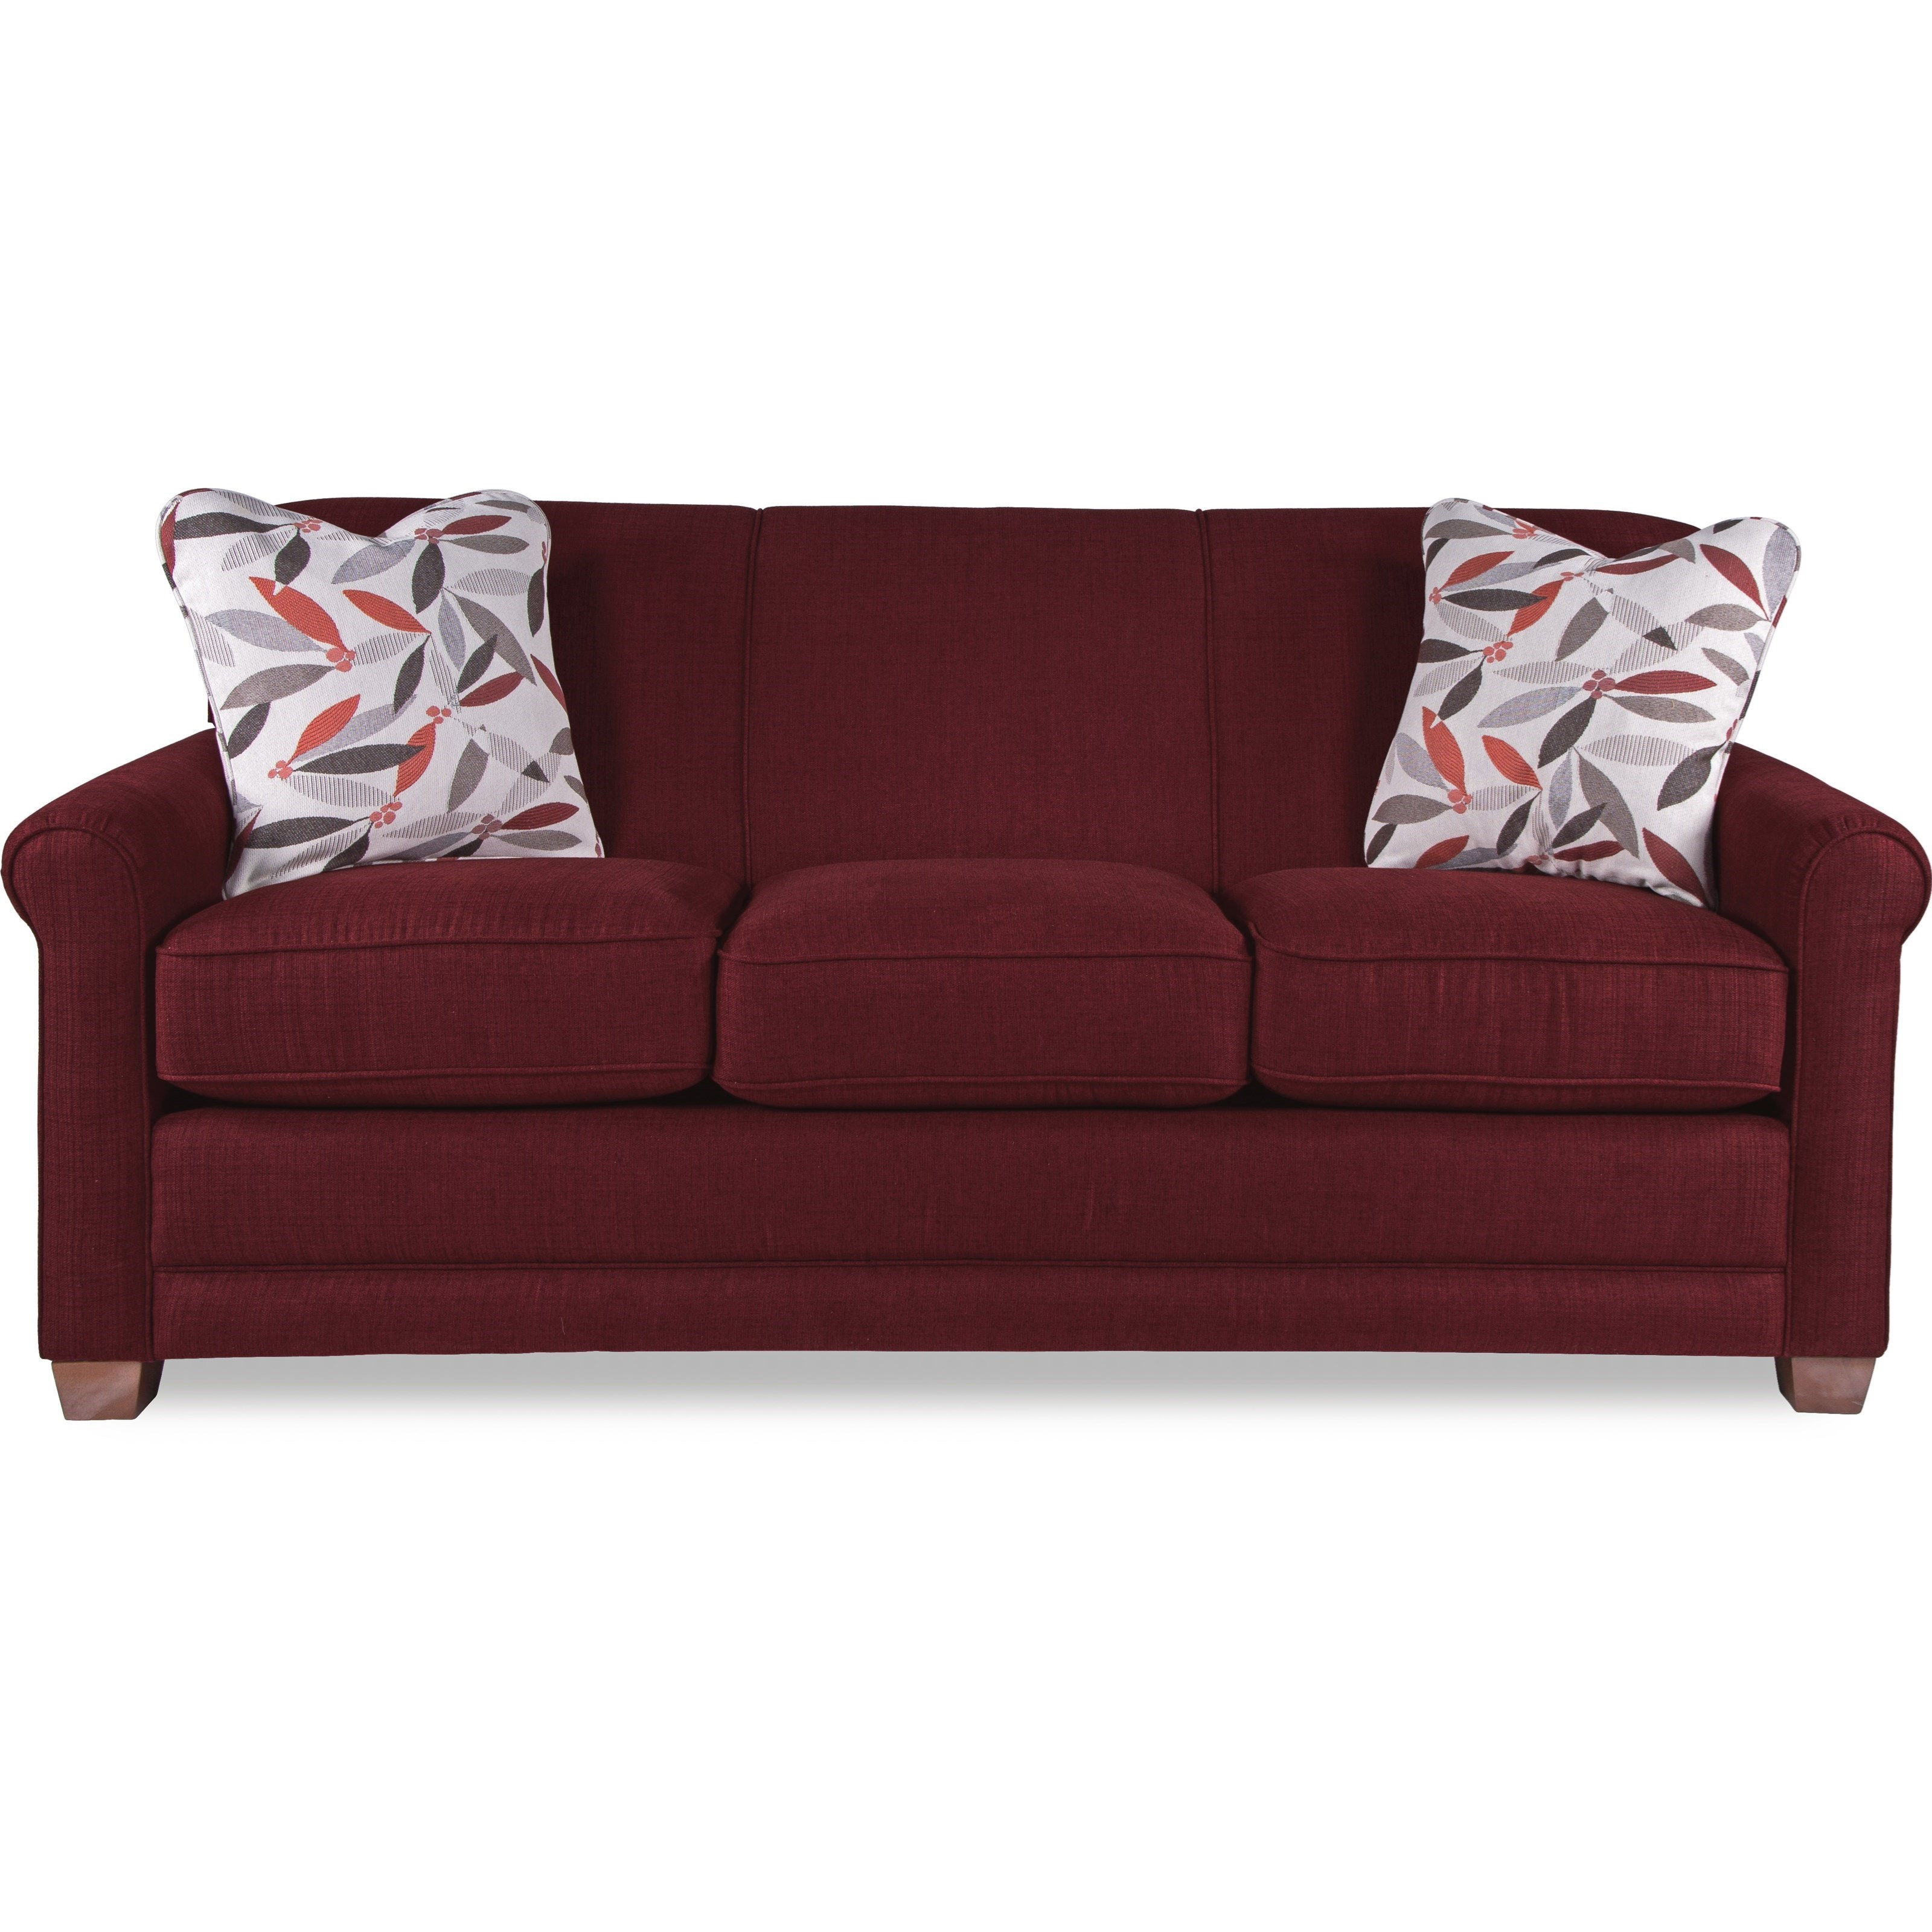 La z boy amanda casual sleeper sofa with premier for Casual couch